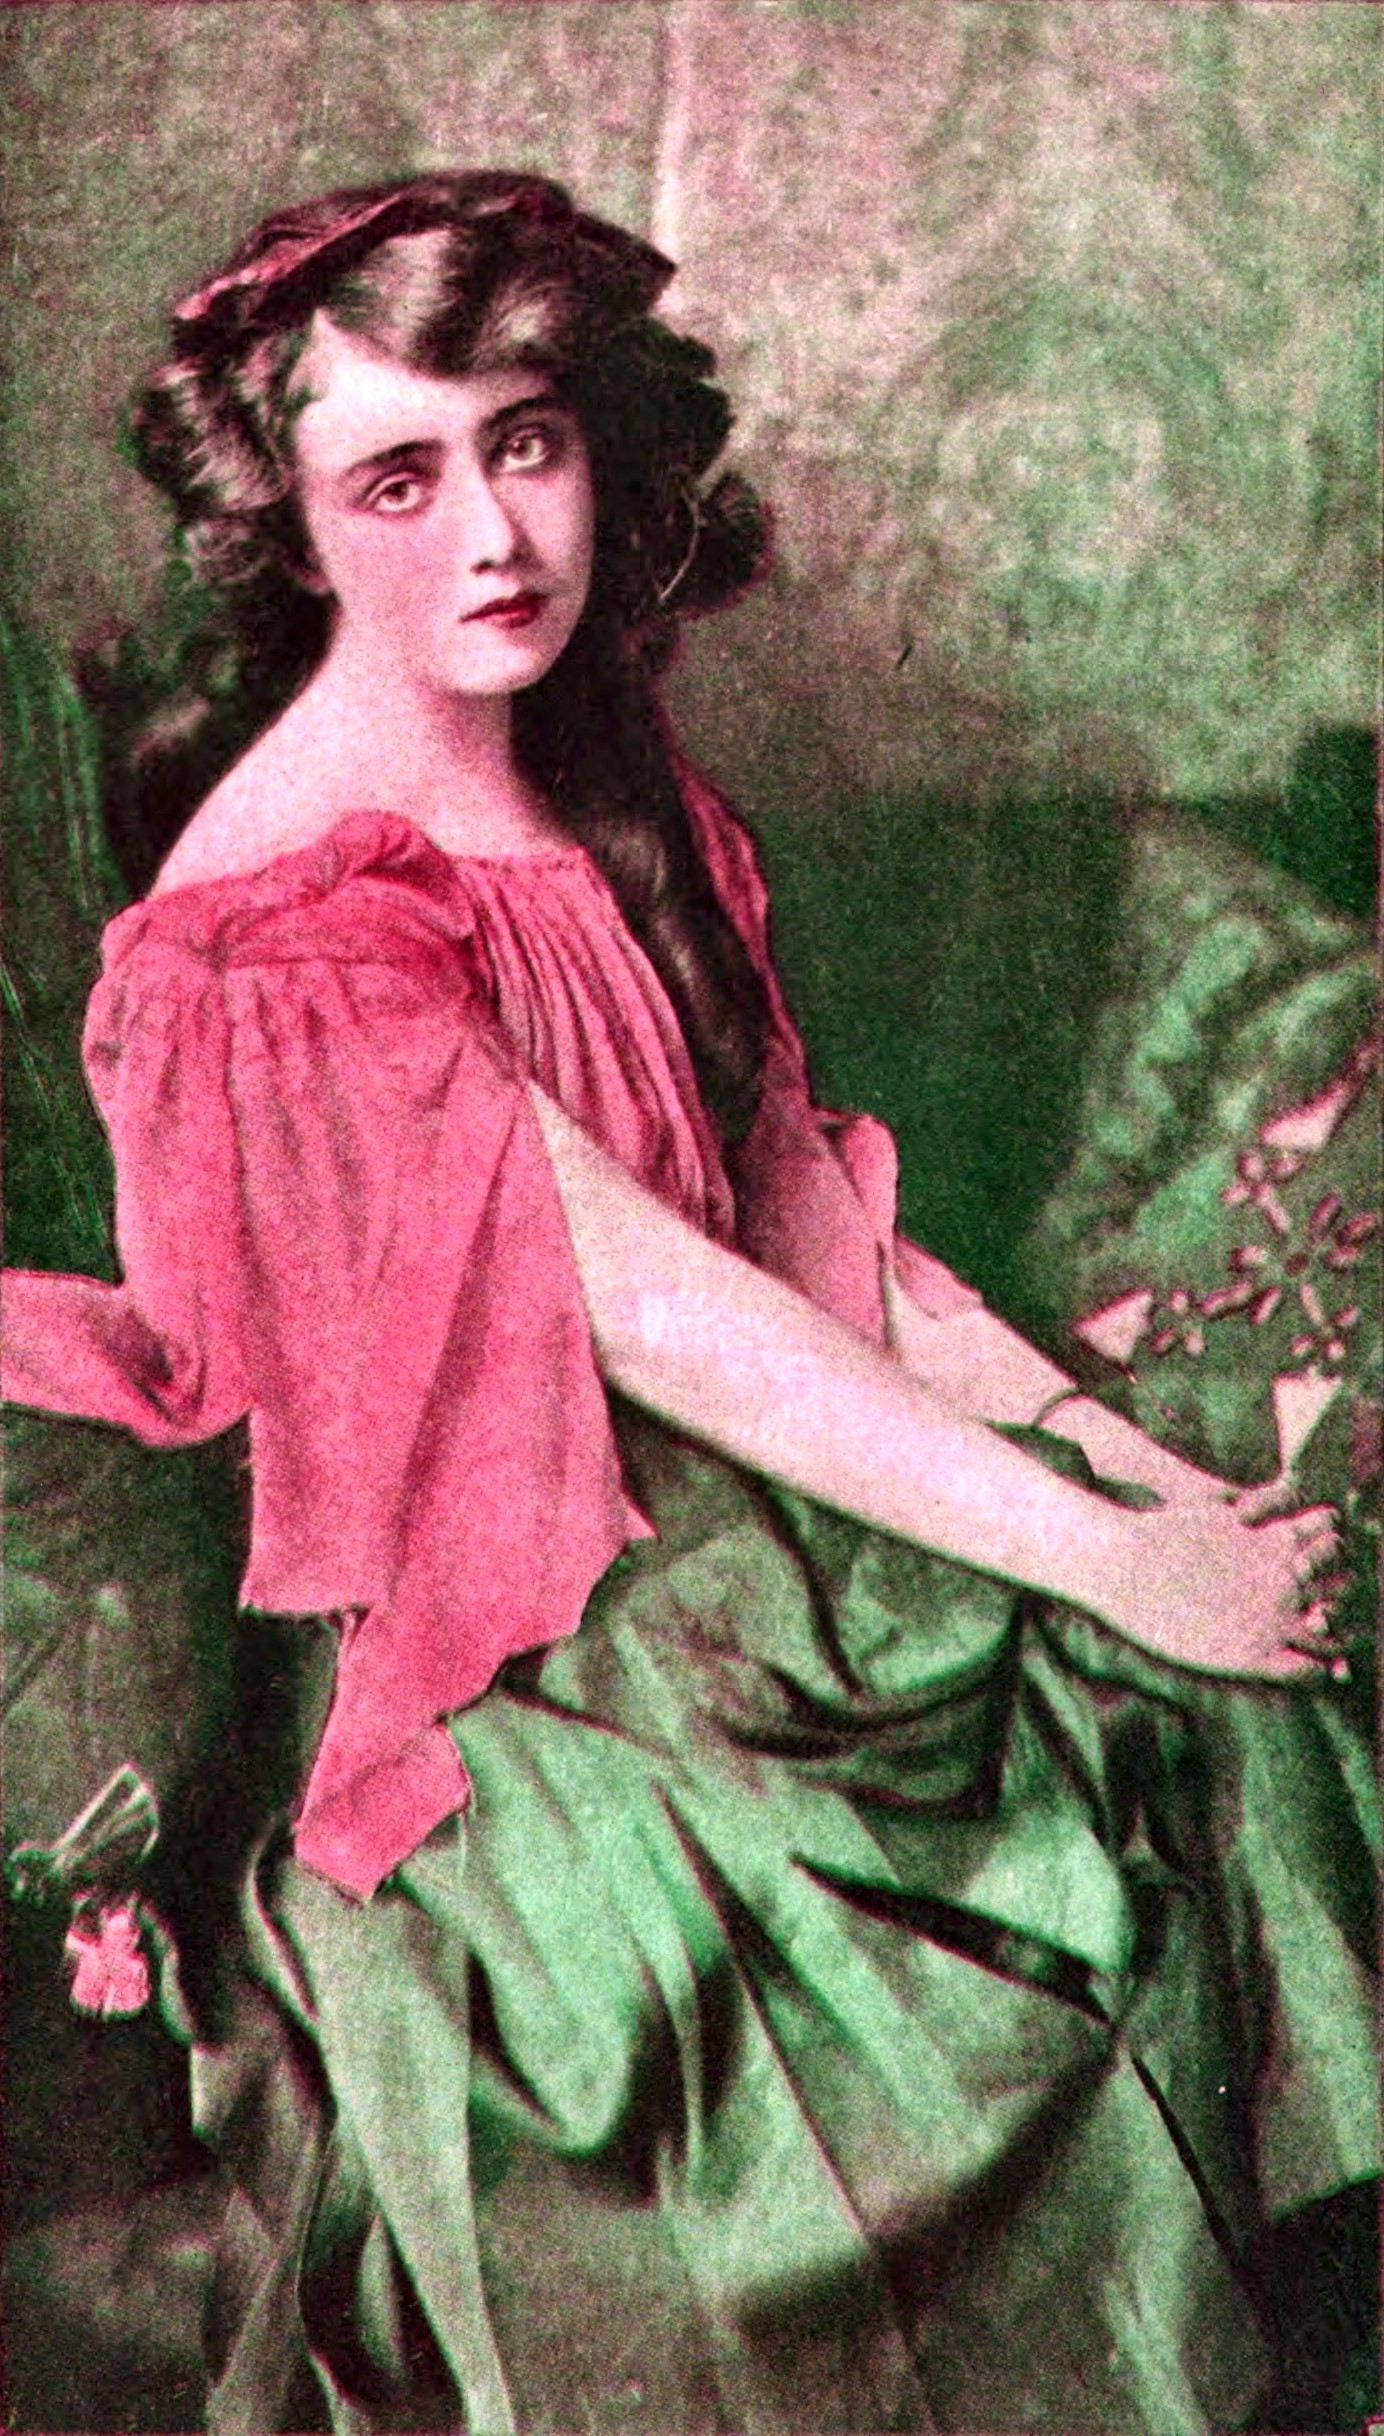 May de Sousa (1884 – 1948) American singer and actress about 1907